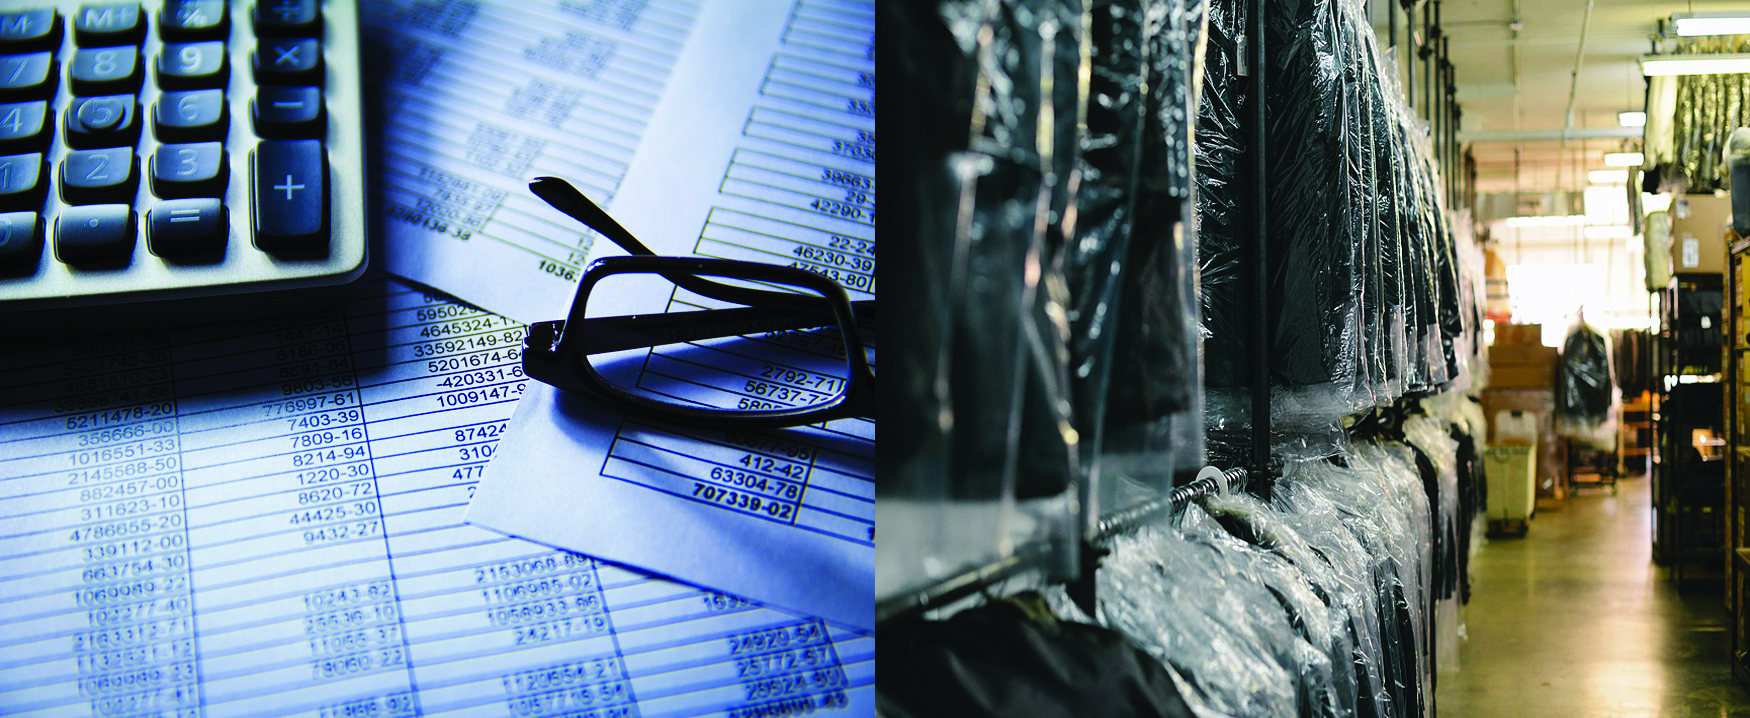 Two pictures. The one on the left is a 10-key calculator and a pair of reading glasses on top of papers with columns of numbers filling them. The one on the right is a shot from inside a dry-cleaner store, looking down a long double-row of clothes hanging in dry-cleaner bags.